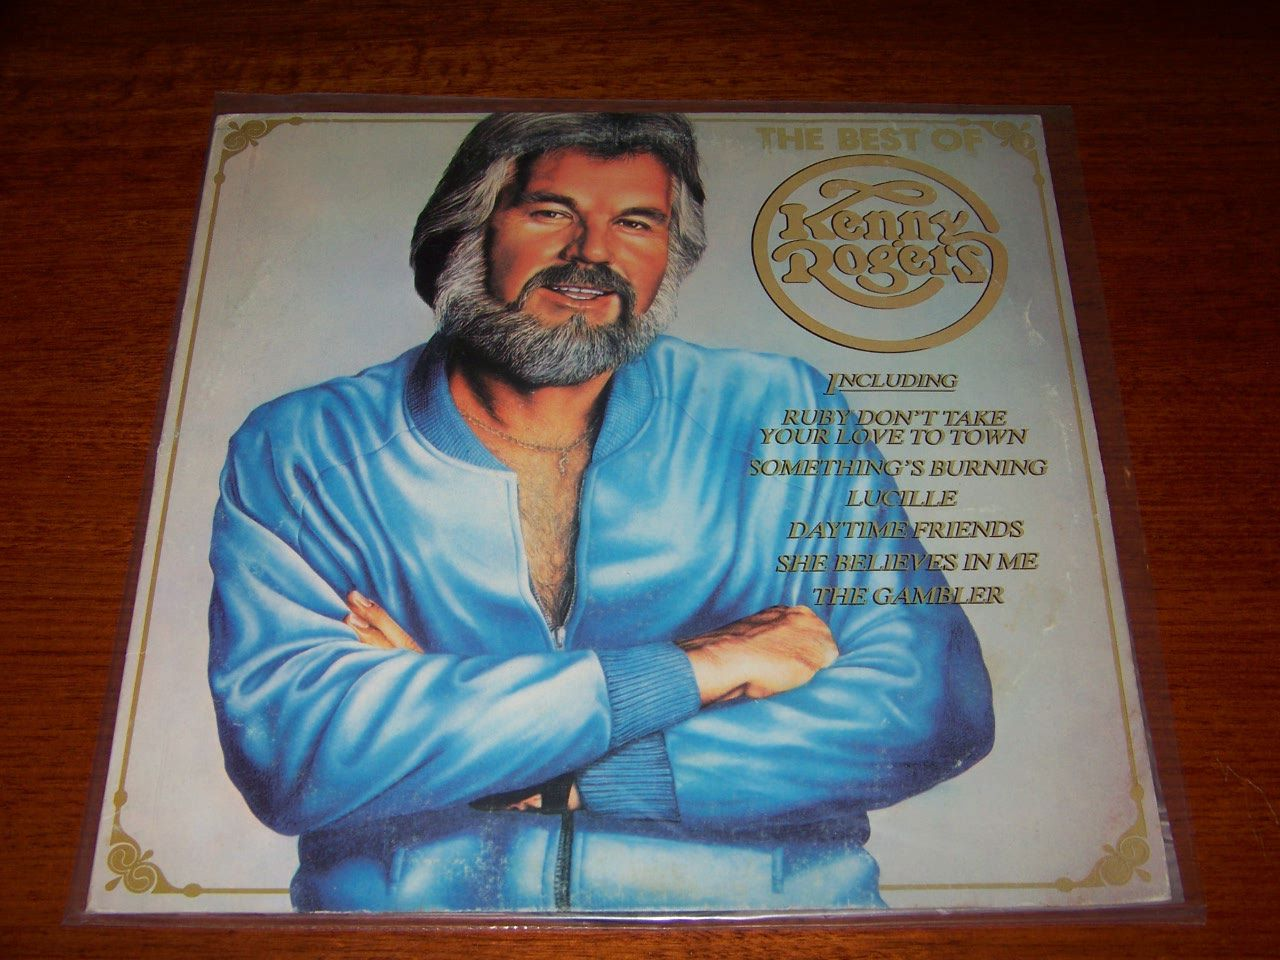 The-BEst-of-Kenny-Rogers-1979-LP